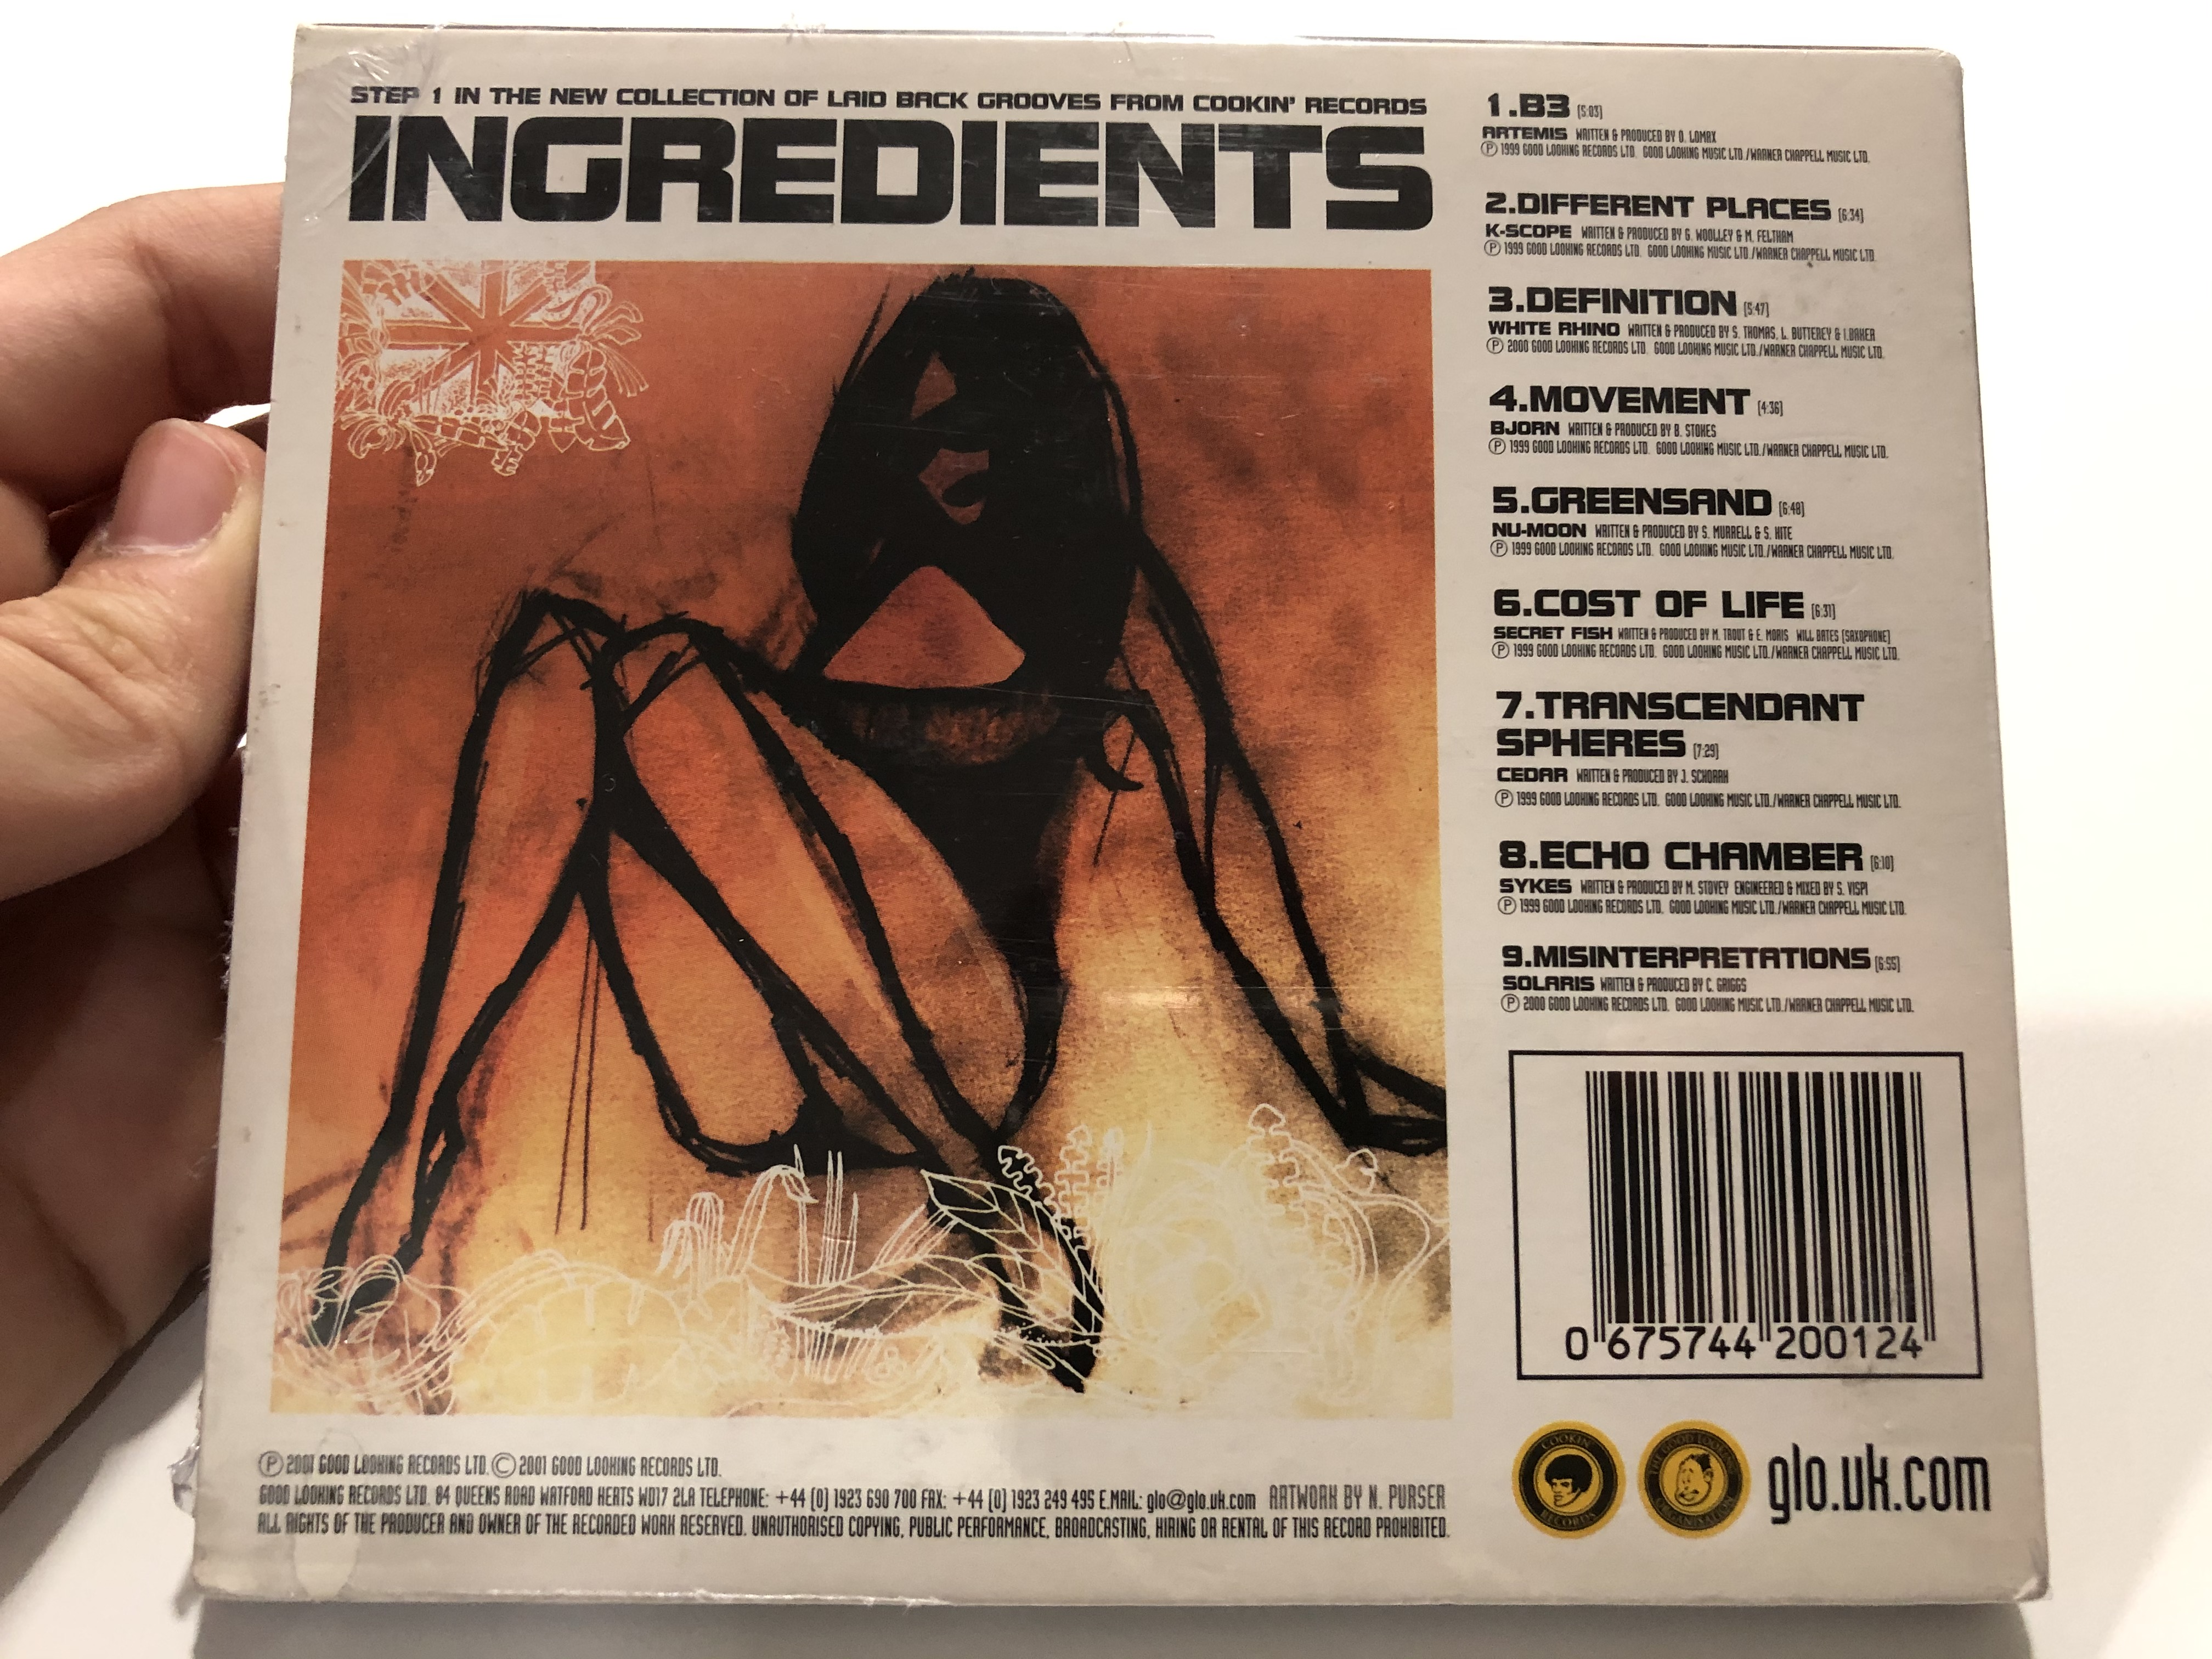 ingredients-cookin-step-1-in-the-new-collection-of-laid-back-grroves-from-cookin-records-cookin-records-audio-cd-2001-ckb01-3-.jpg